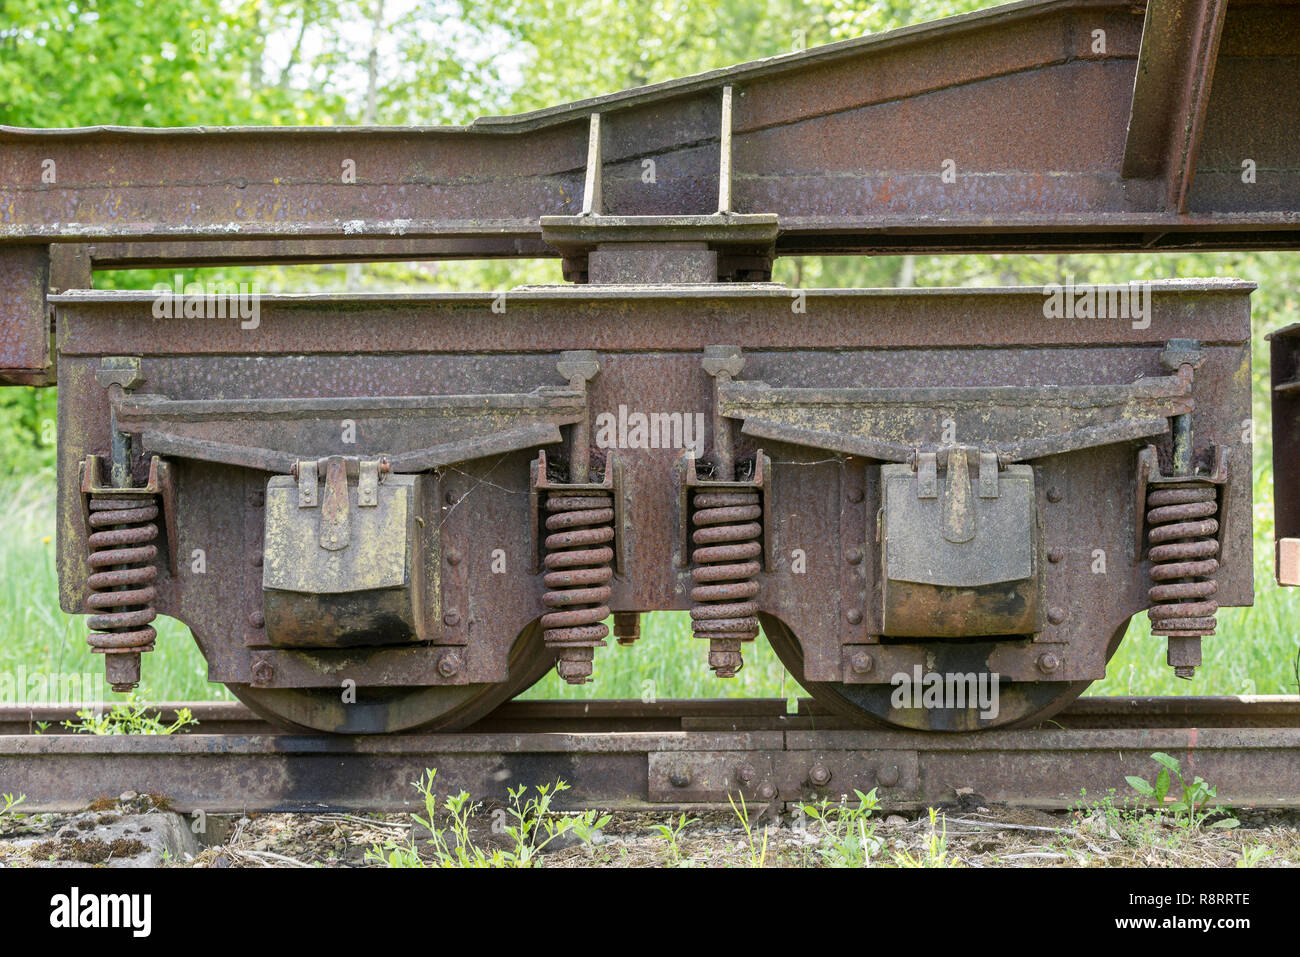 Old train and locomotive wheels. Railroad tracks stretches and green grass and trees. Railway road environment background. Stock Photo